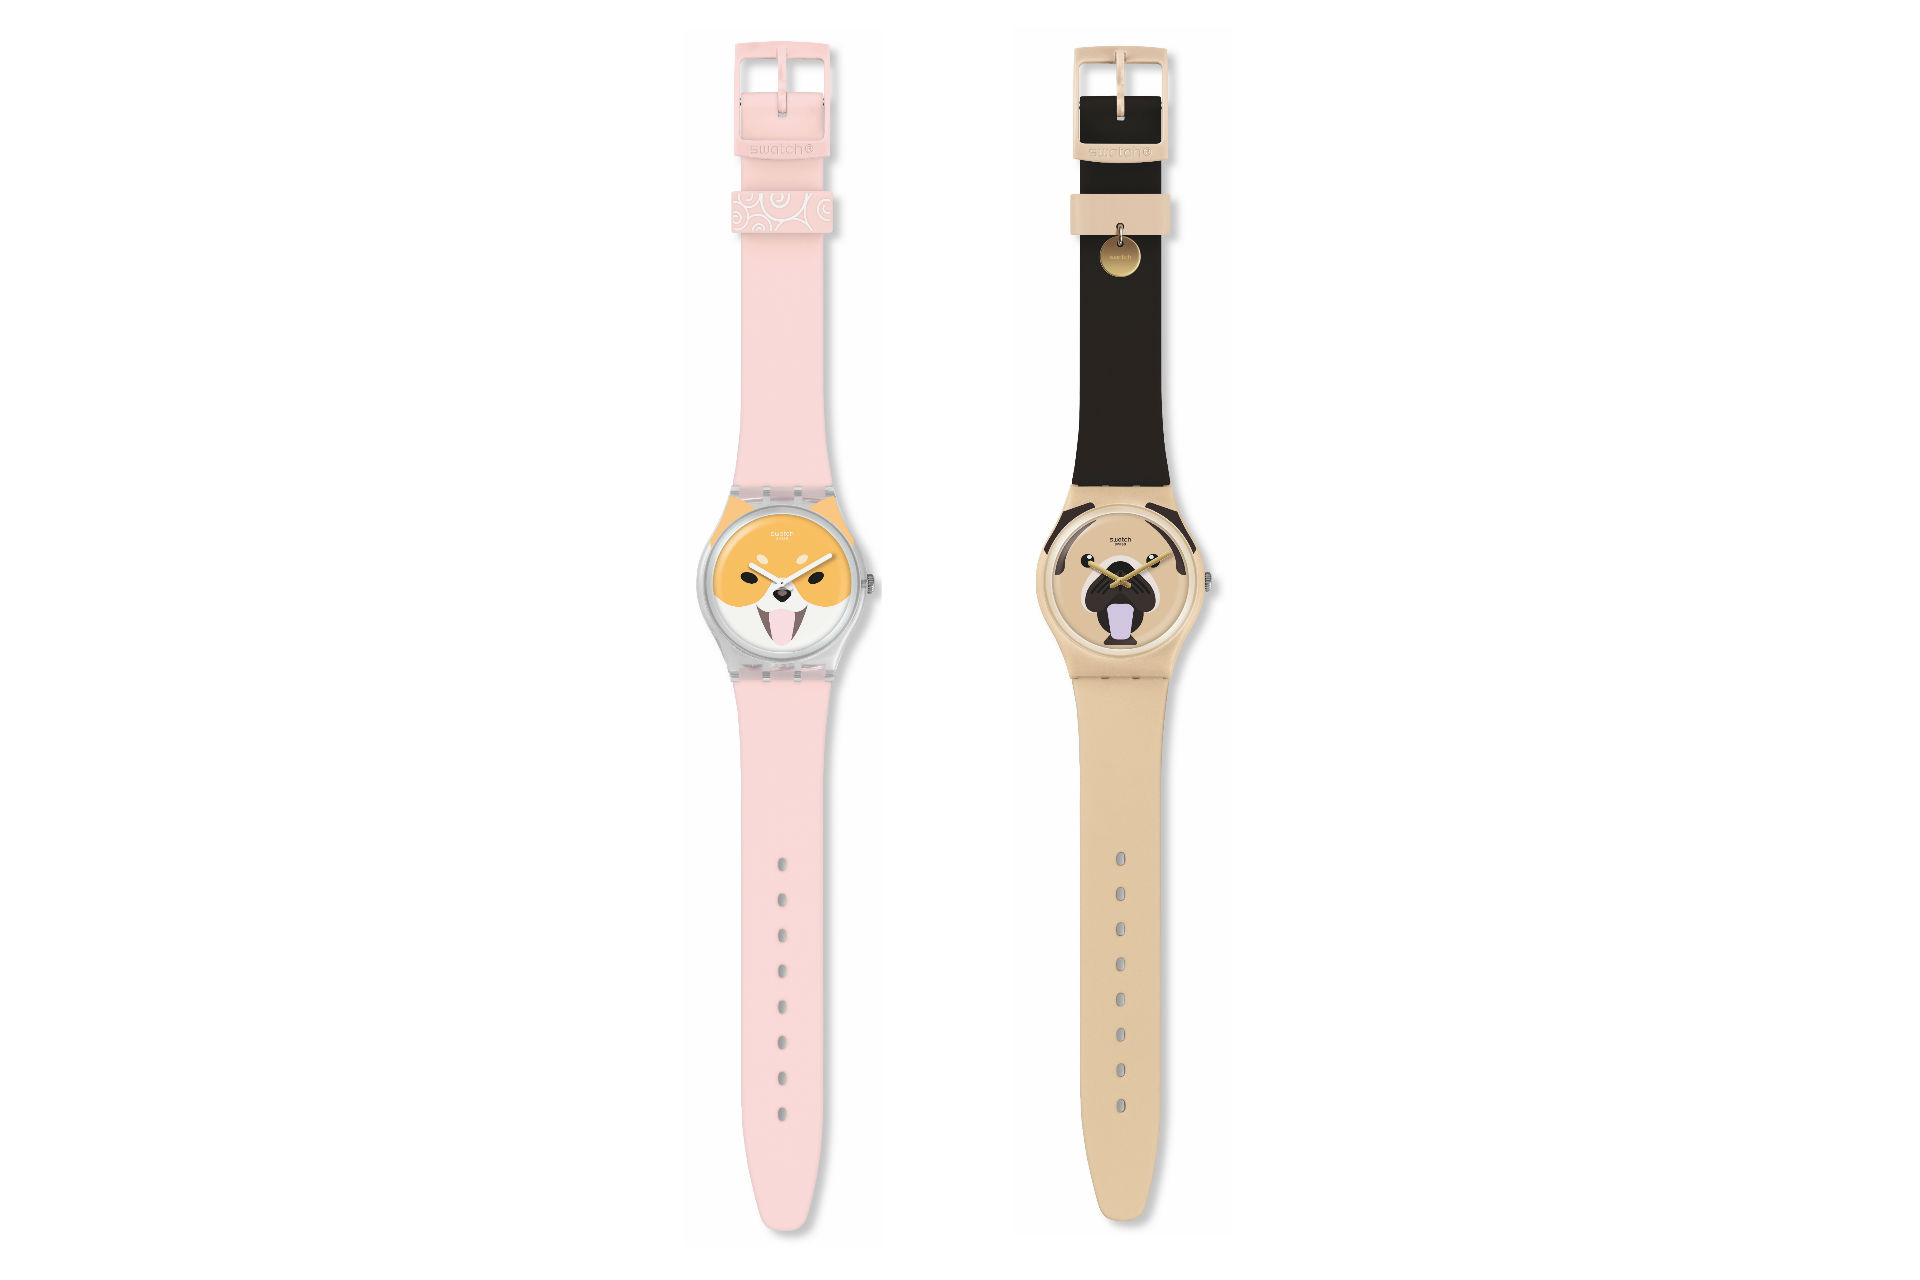 watches with dog faces on them